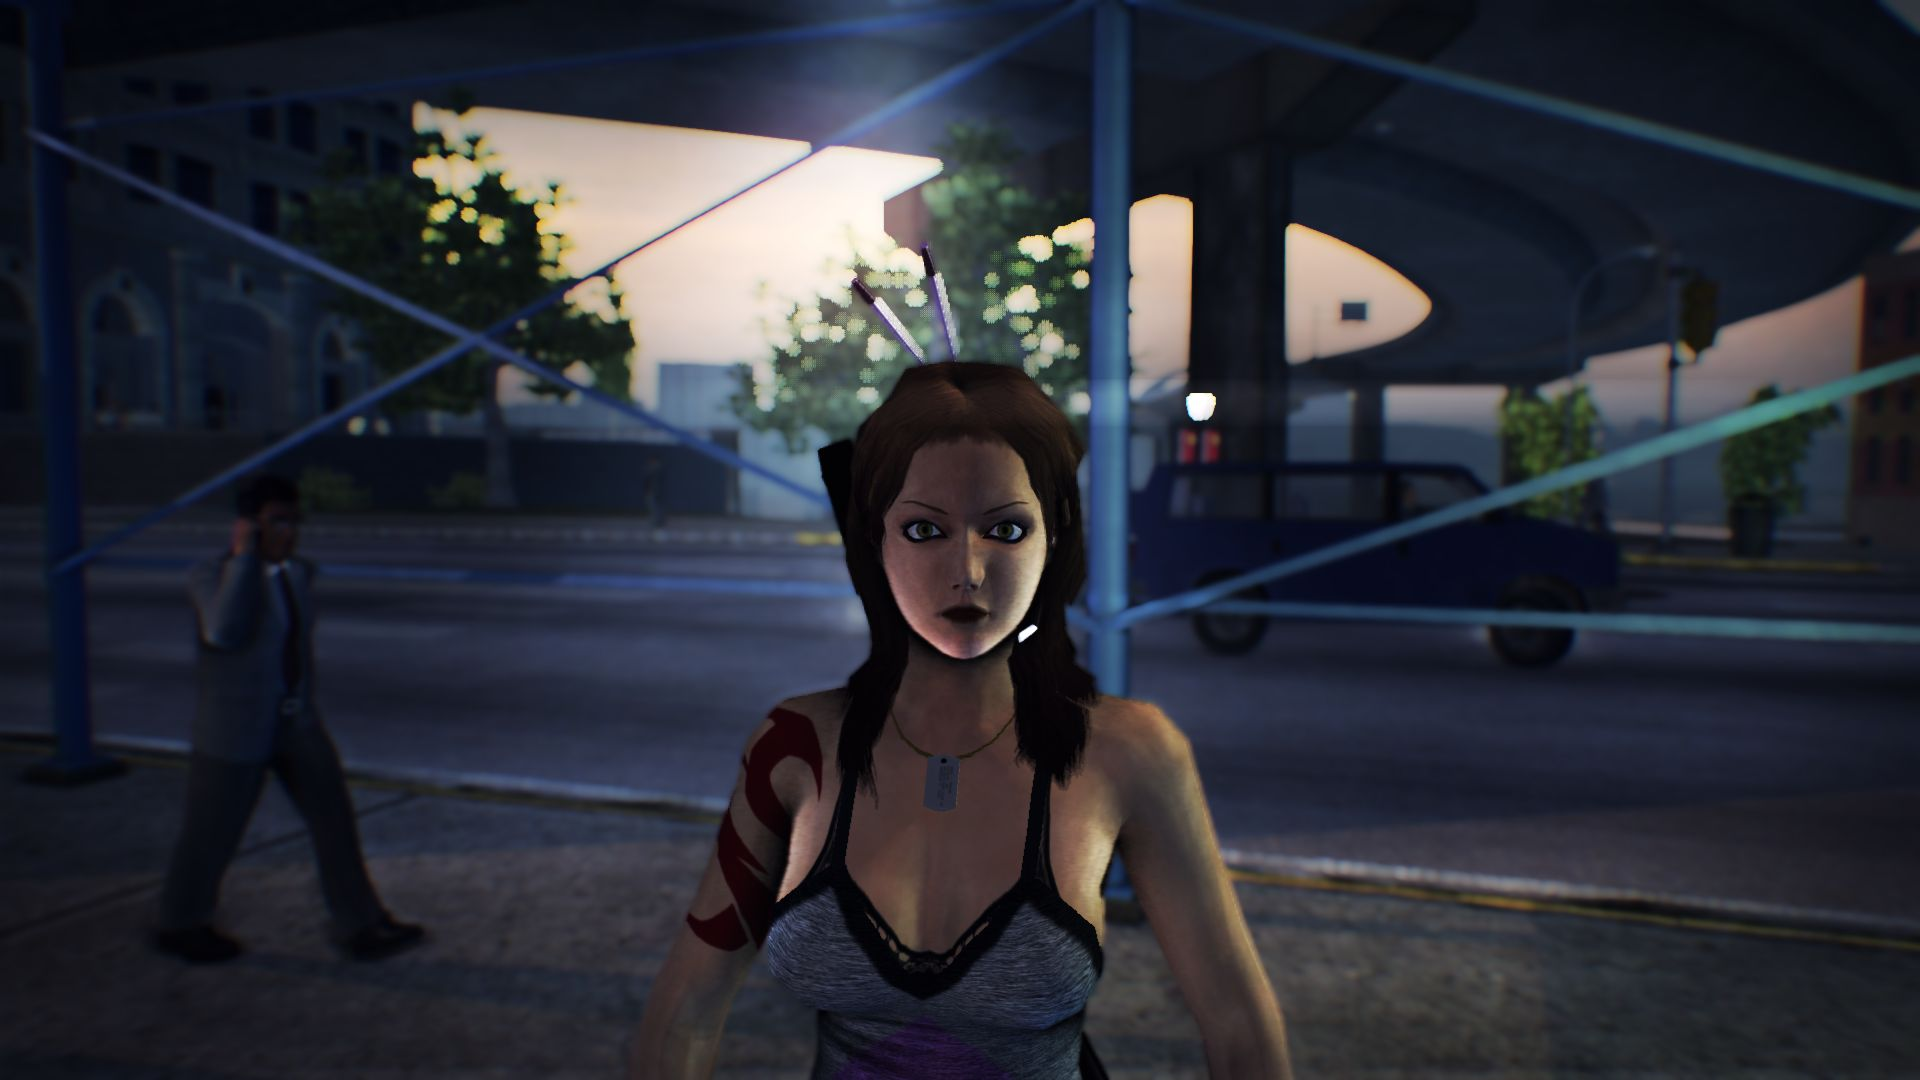 Saints row 2 porno image